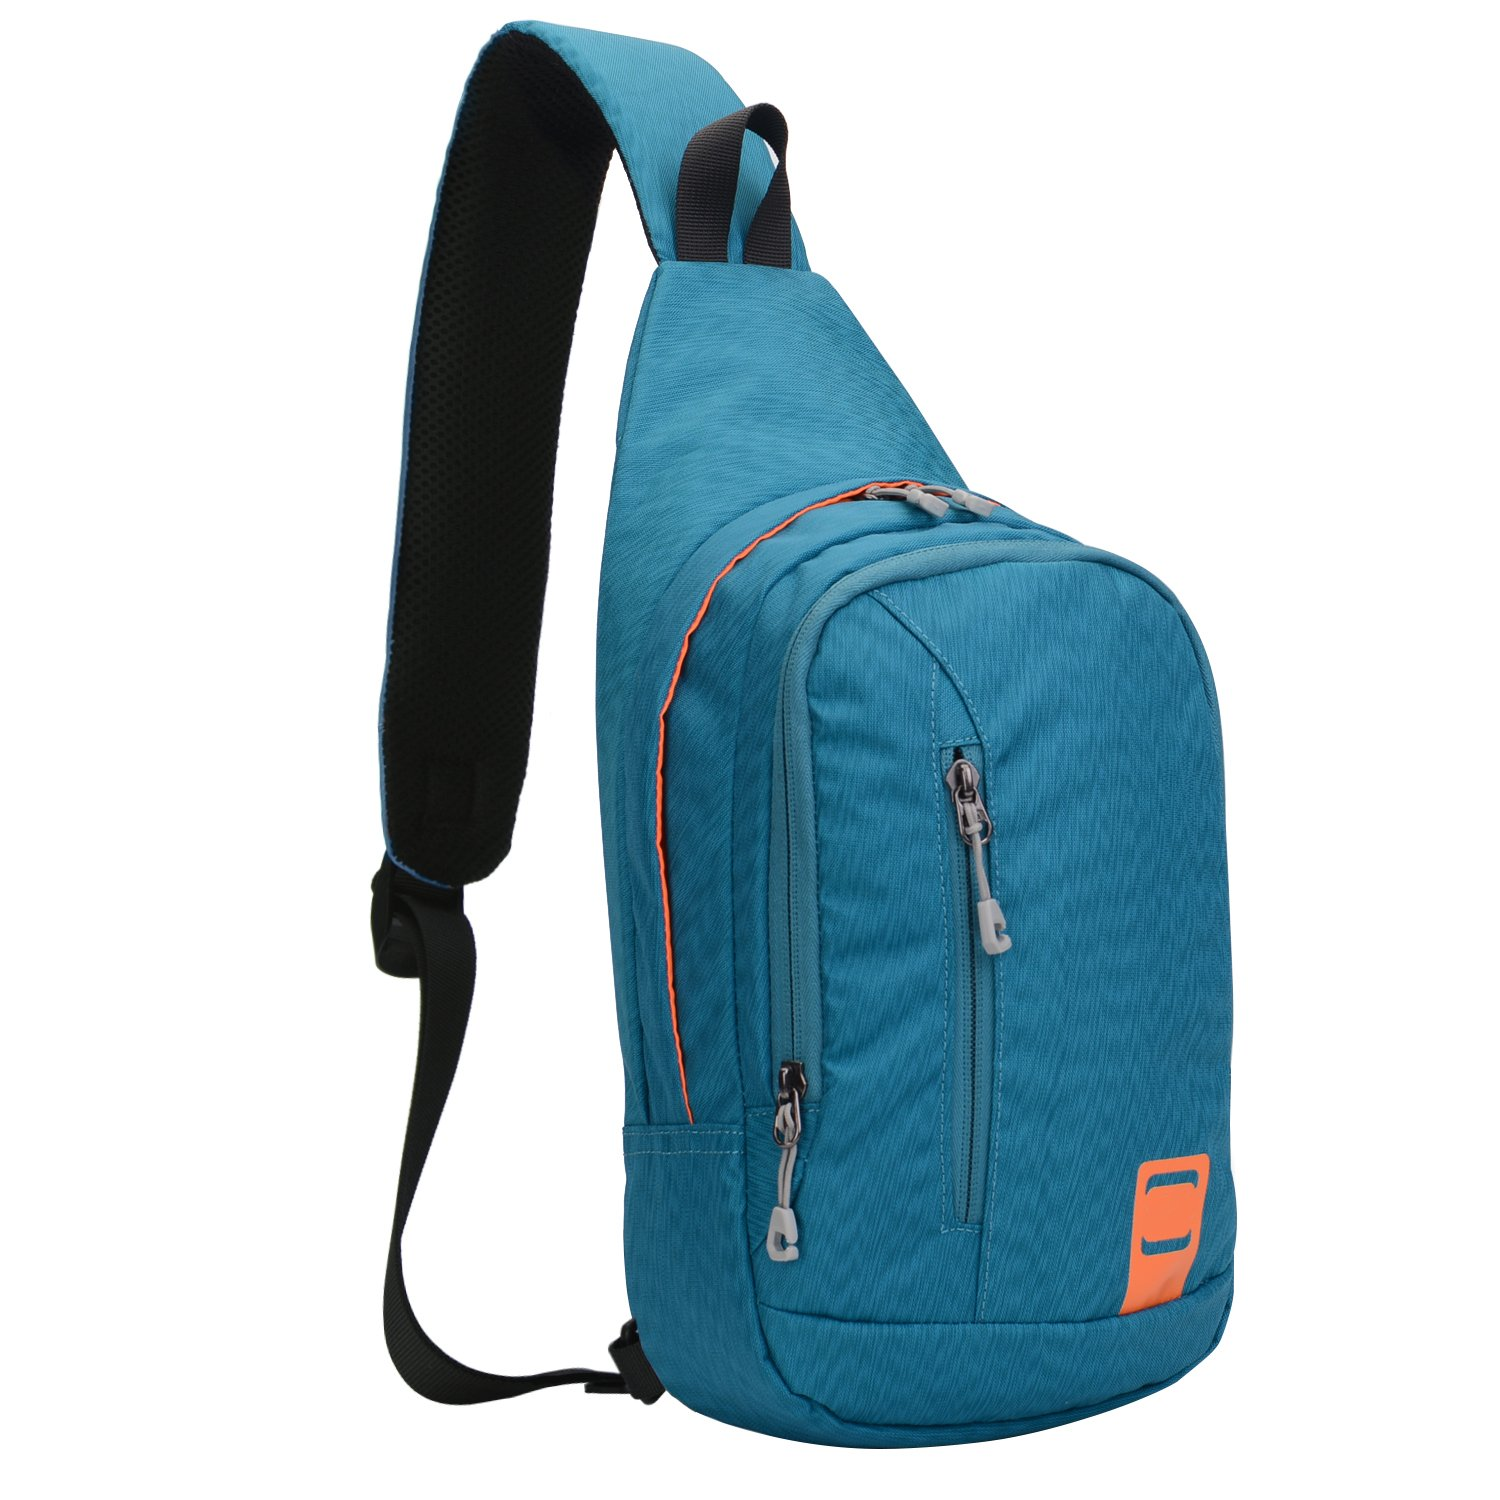 Lecxci Outdoor Chest Sling Shoulder Bag, [Ultra-Lightweight Waterproof Nylon] [Hiking Cycling Camping Travel] Sling Shoulder Chest Daypack Backpack Bag for Man/Women / College Teen Girls(Blue1)